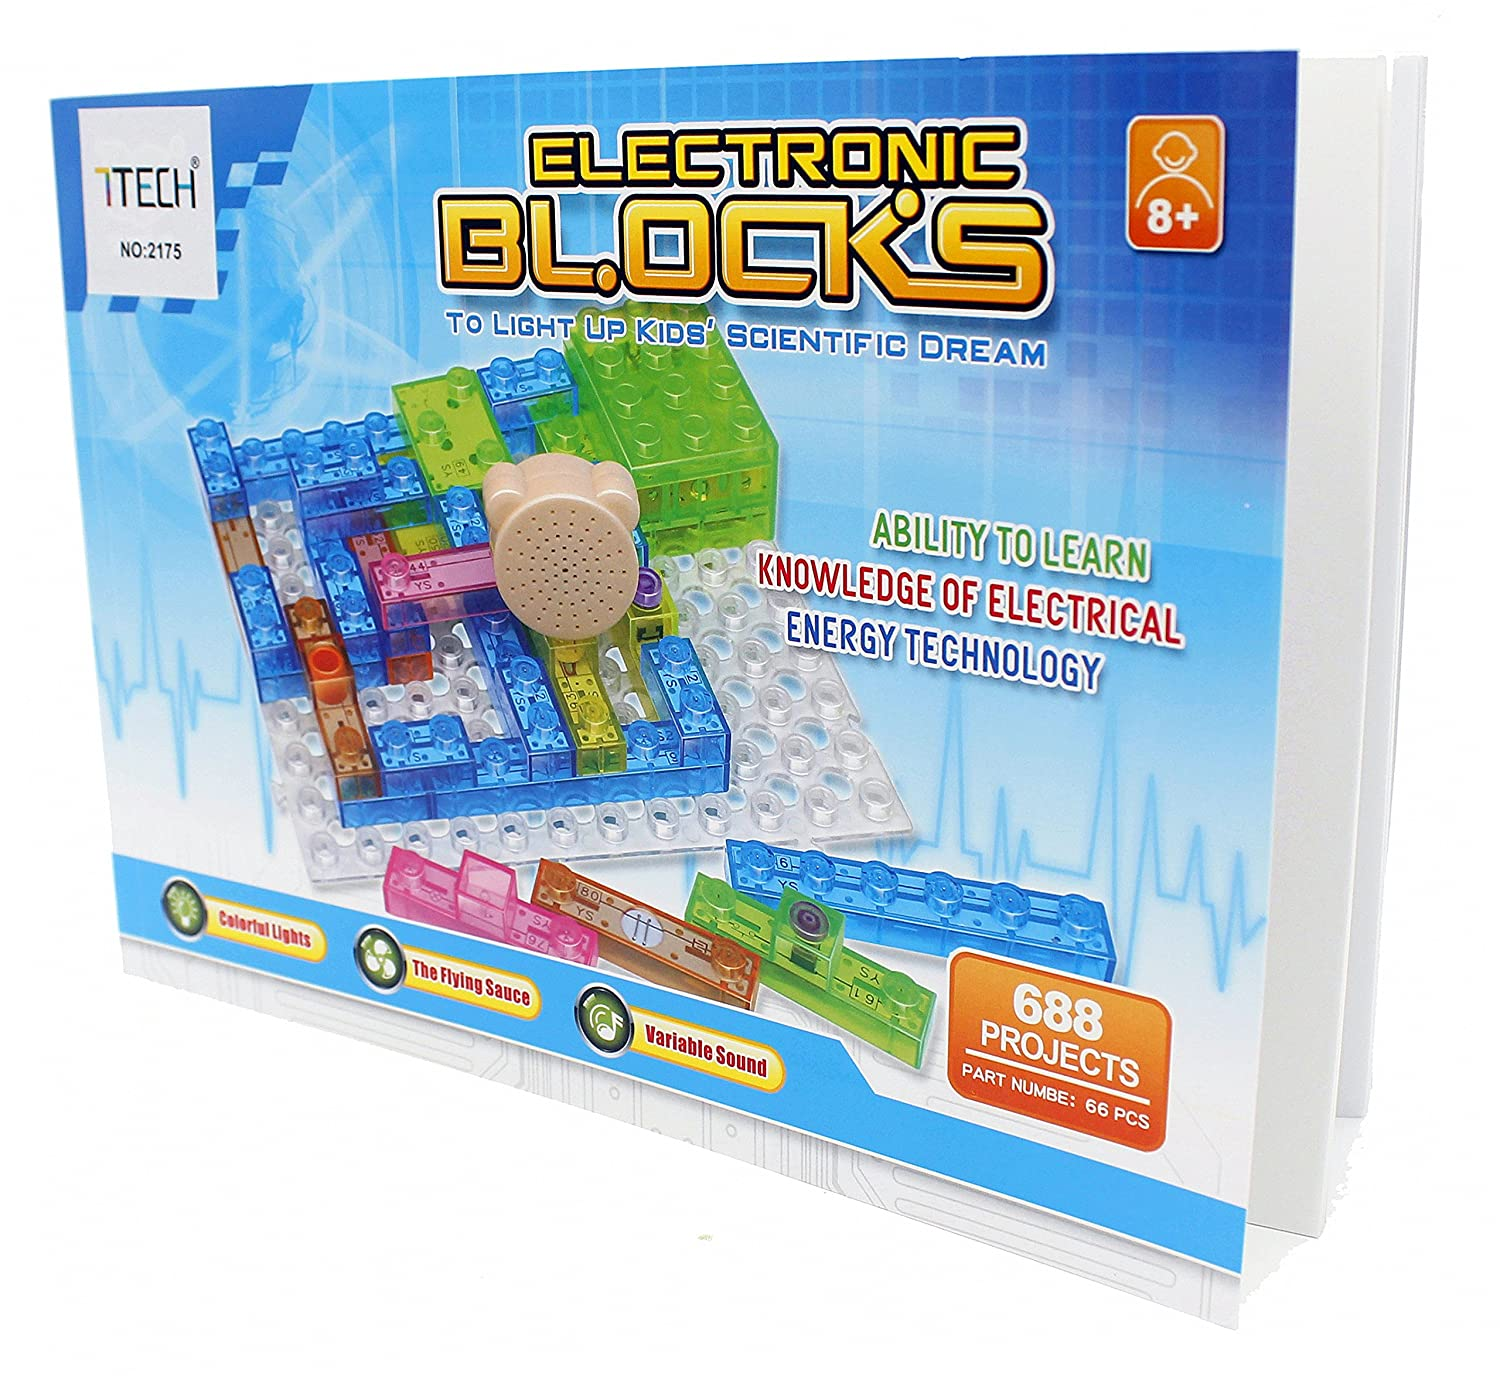 7tech Electronic Building Blocks 688 Spell Projects Diy Handson Squishy Circuit Electricity For Kids Circuits Electric Block Kit Educational Science Toy Toys Games